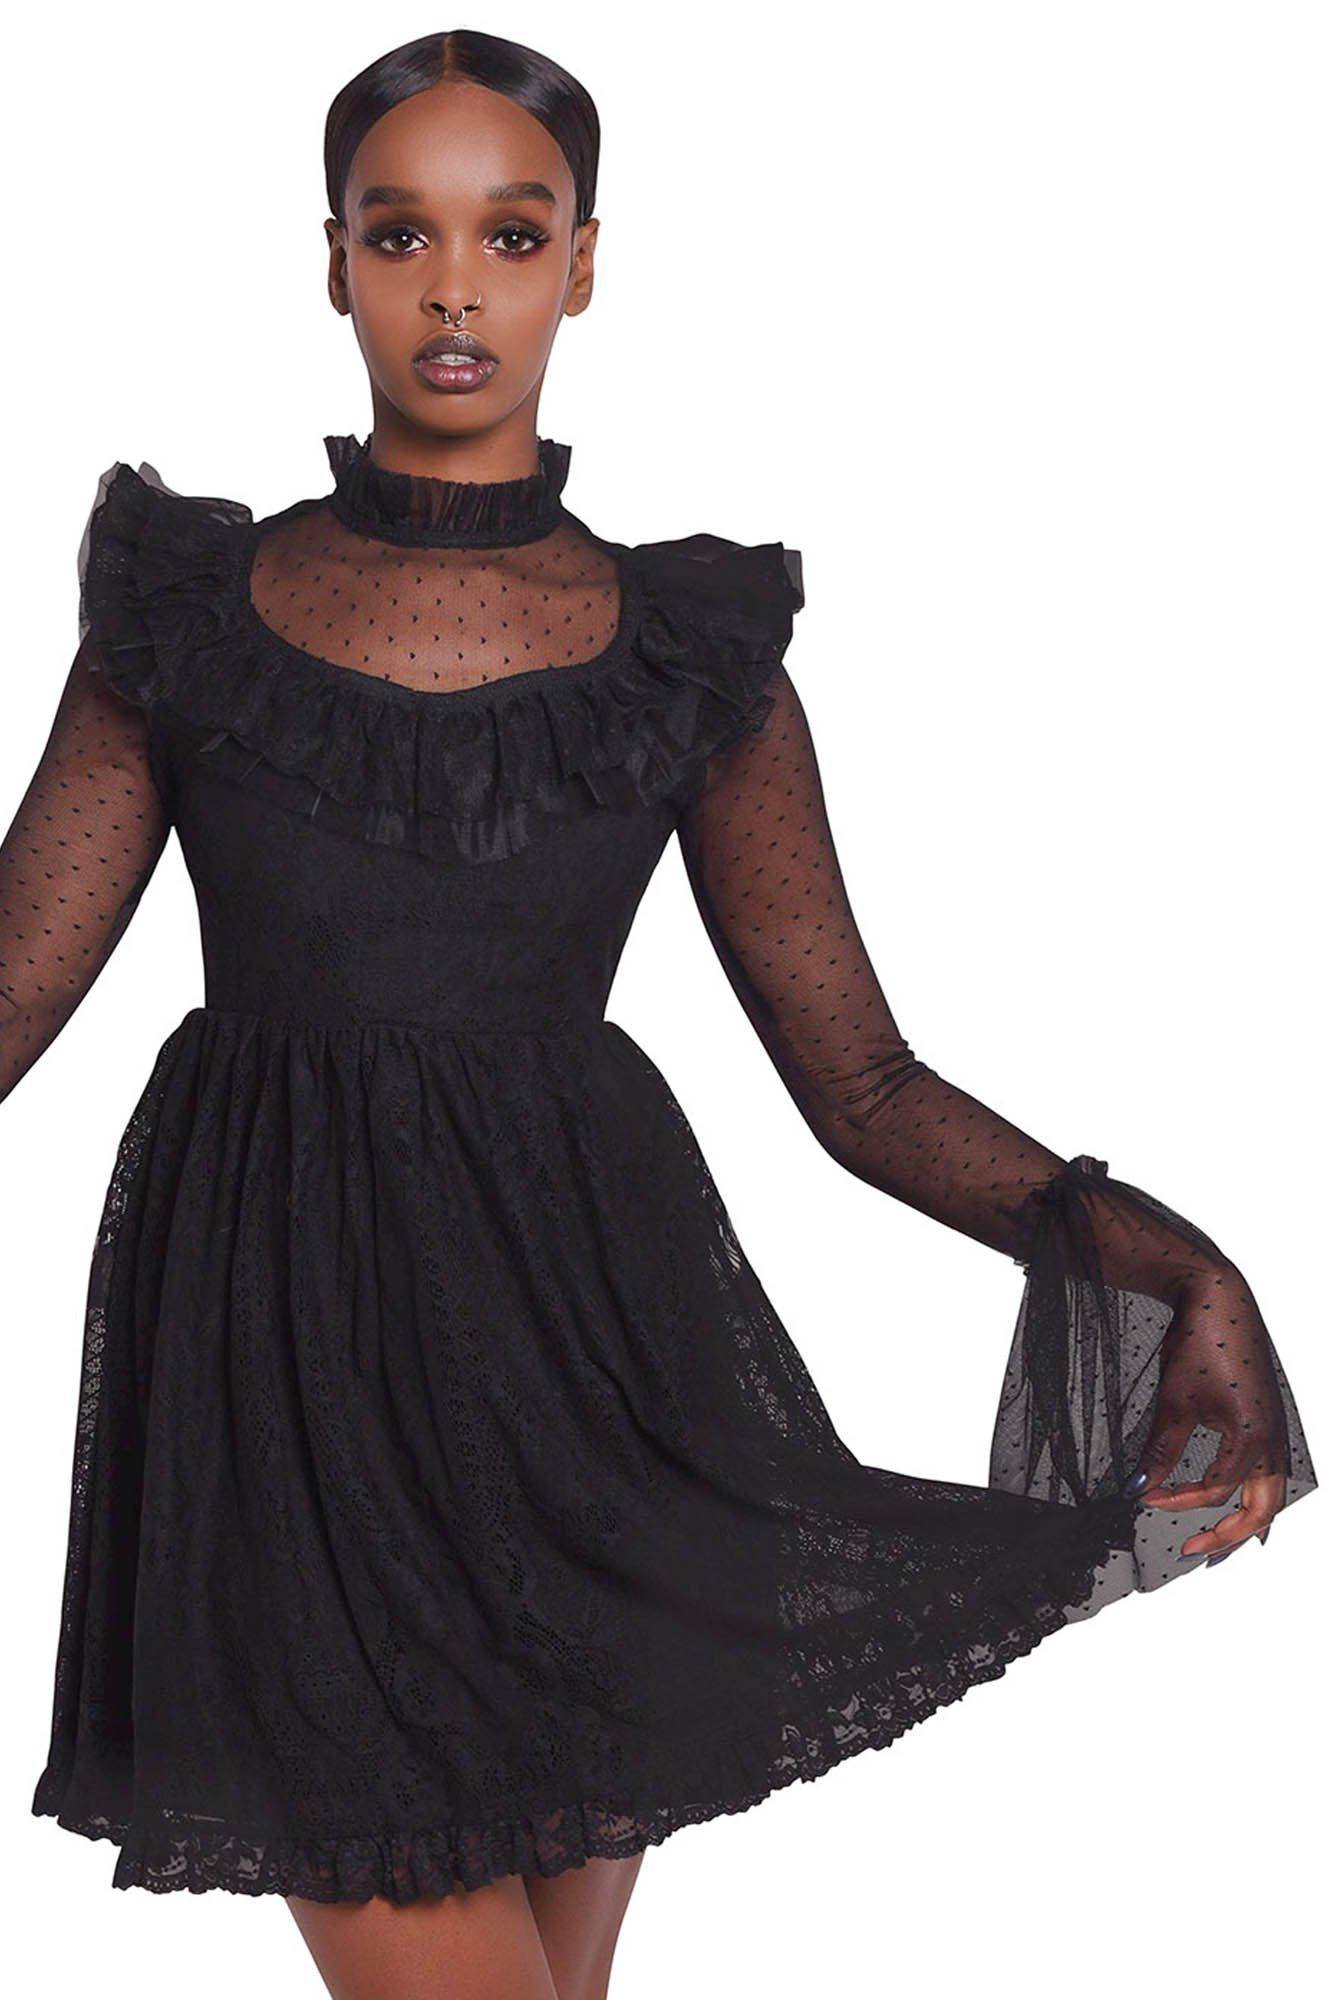 Killstar Bewitched Lace Dress In 2020 Lace Dress Dresses Nice